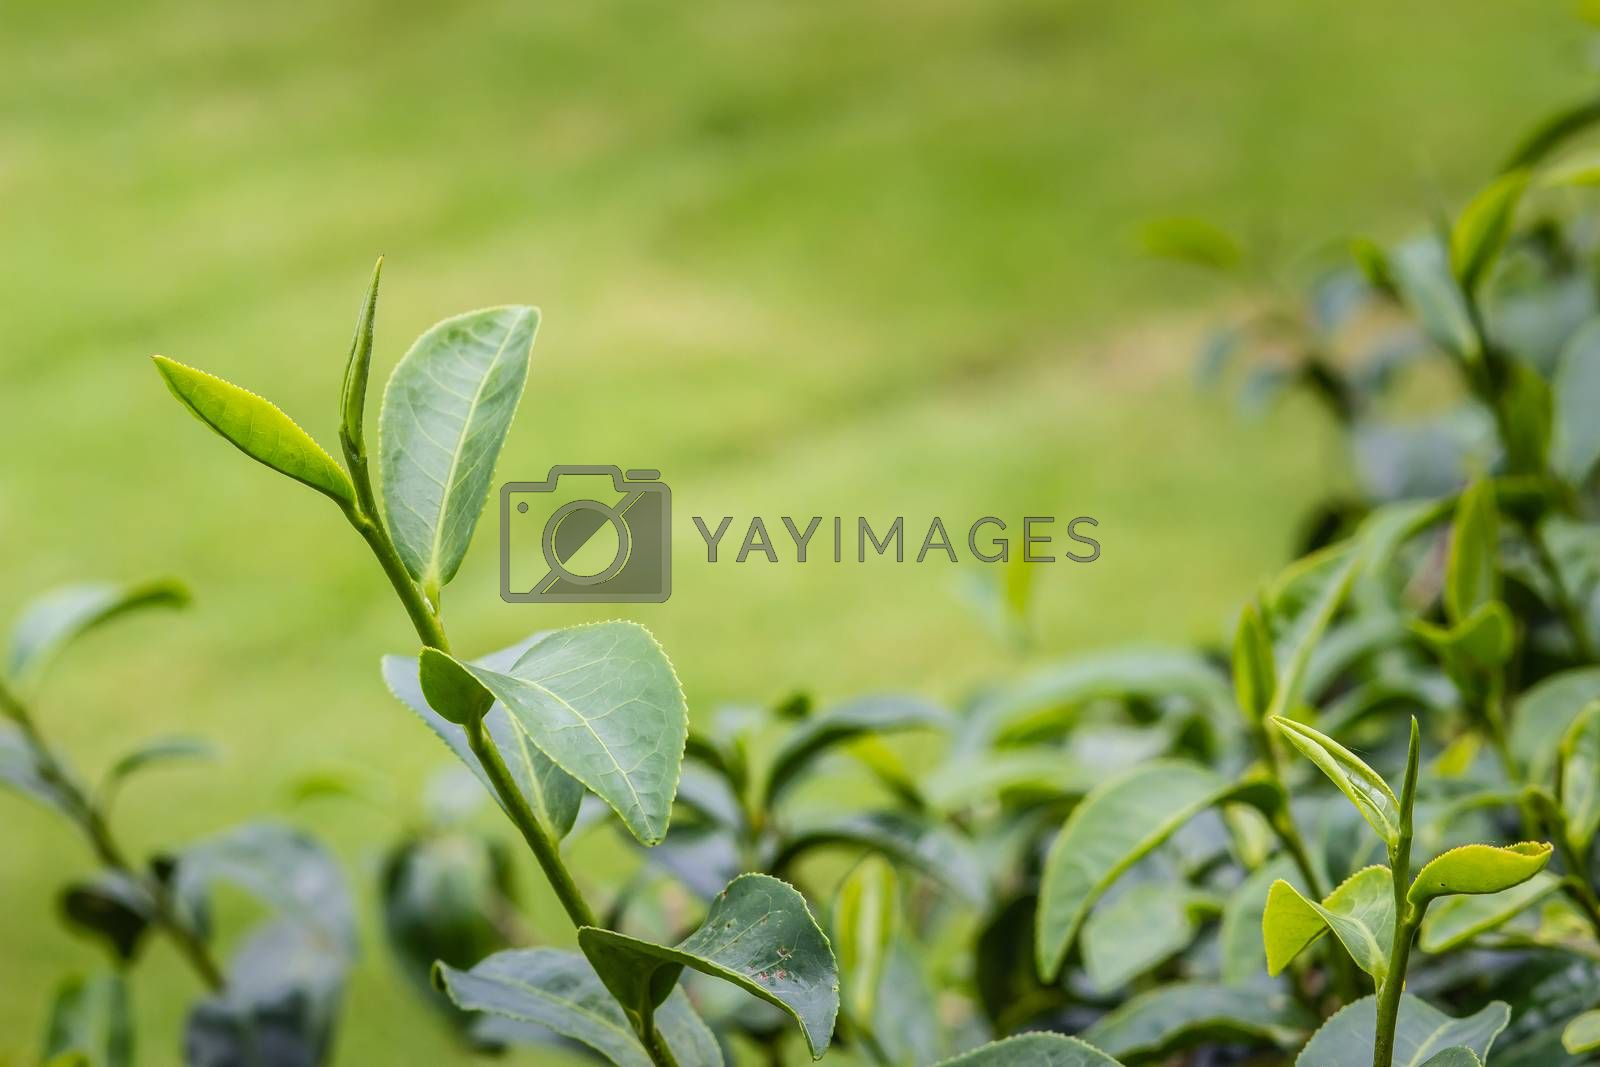 Young shoots of green tea leaves in the morning before harvesting. The green tea harvested in taste and value from the young shoots leaves is known to produce the highest quality green tea leaves.